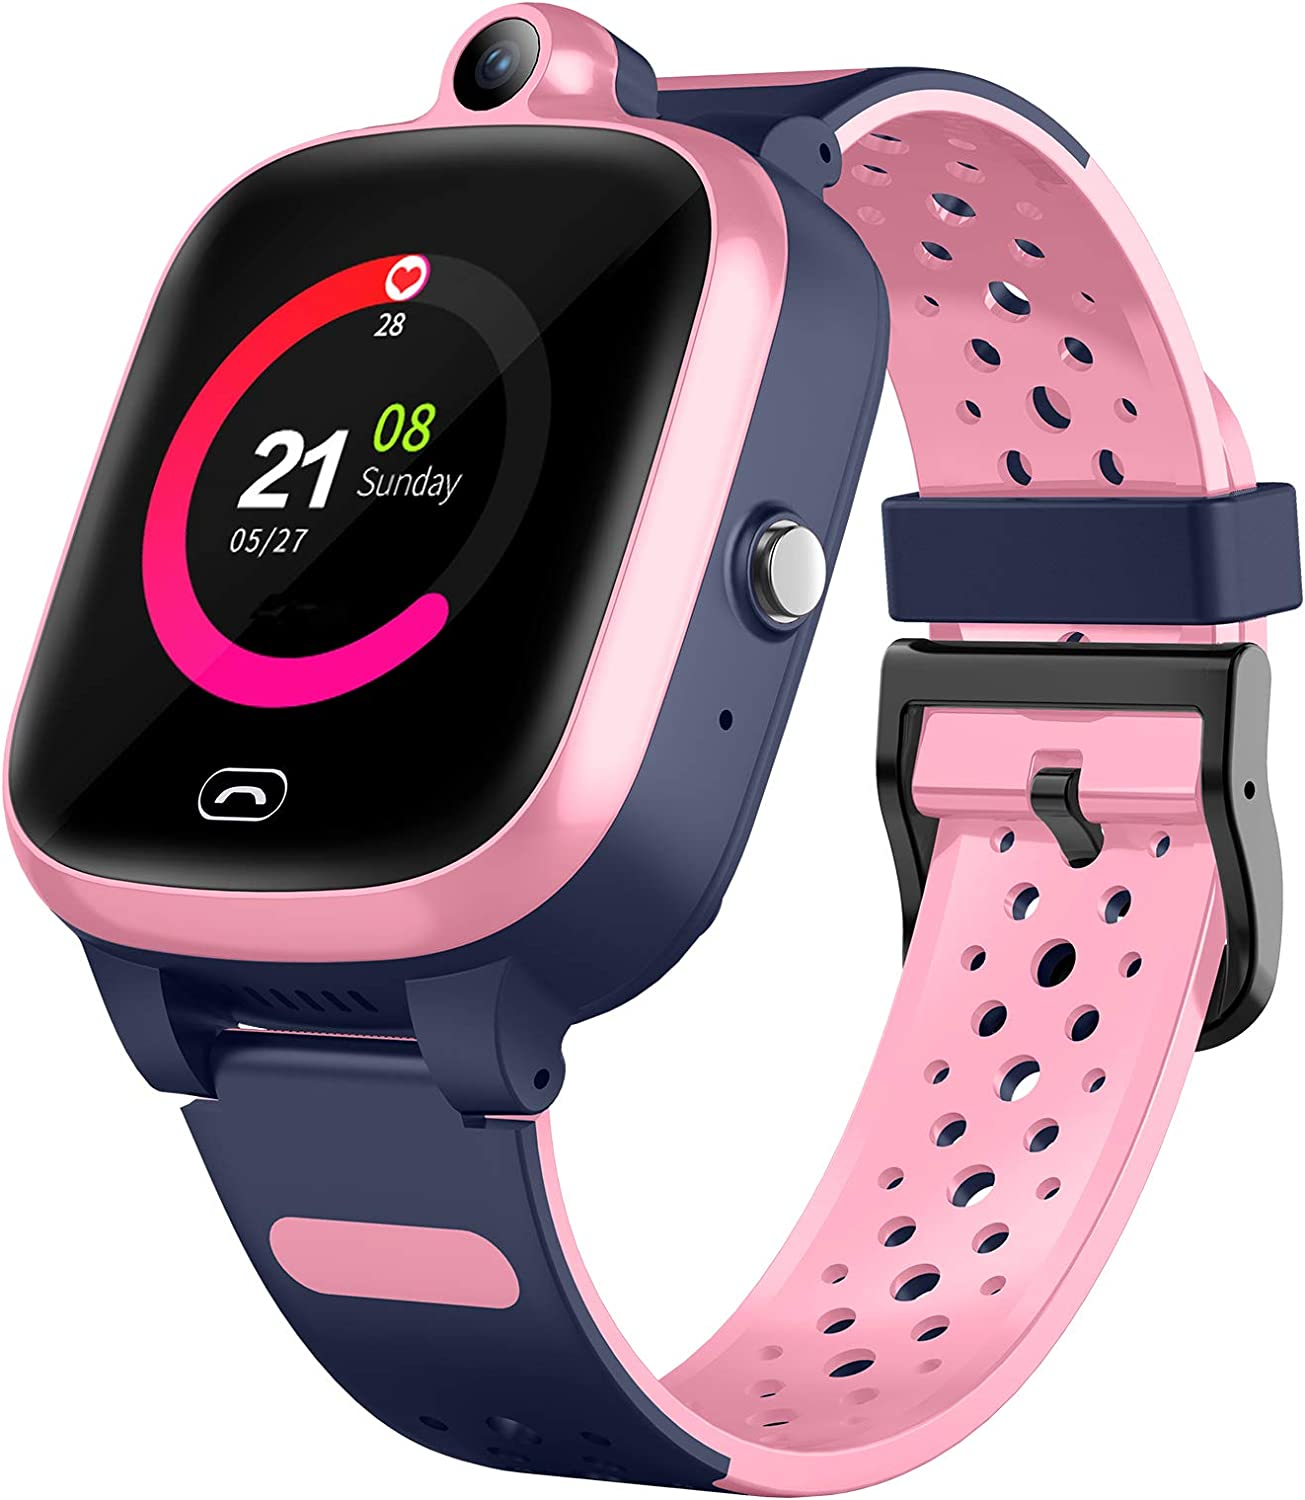 4G Smart Watch for Kids - Smartwatch with GPS WiFi LBS Tracker Real Time Position HD Touch Screen SOS Video Call Waterproof Message Compatible Android and iOS for Boys Girls (Pink)